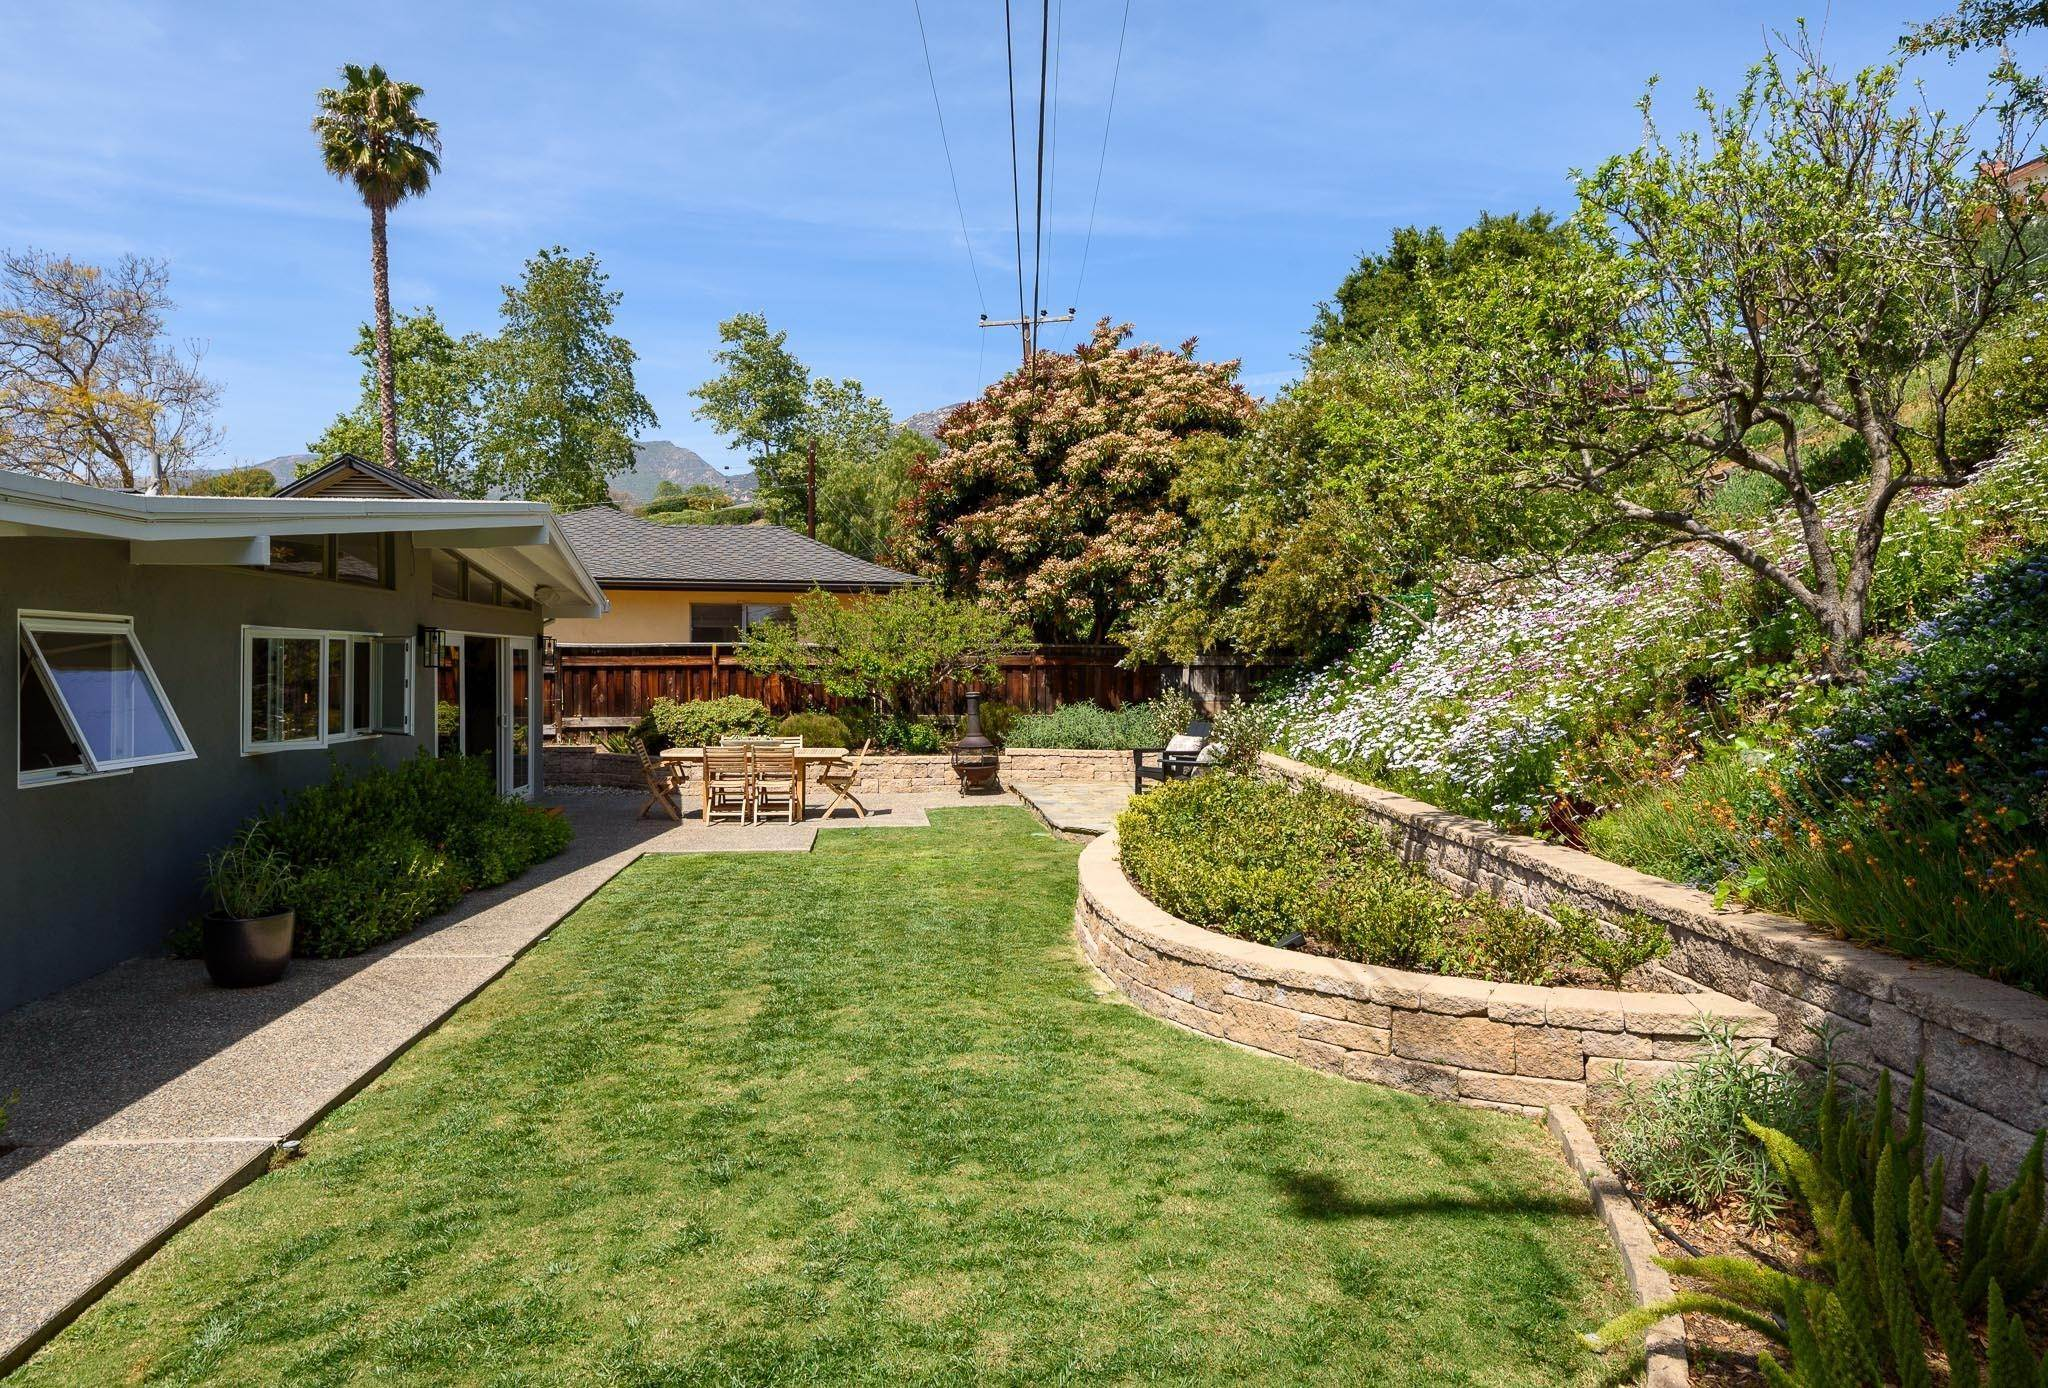 19. Estate for Sale at 802 Willowglen Road Santa Barbara, California 93105 United States